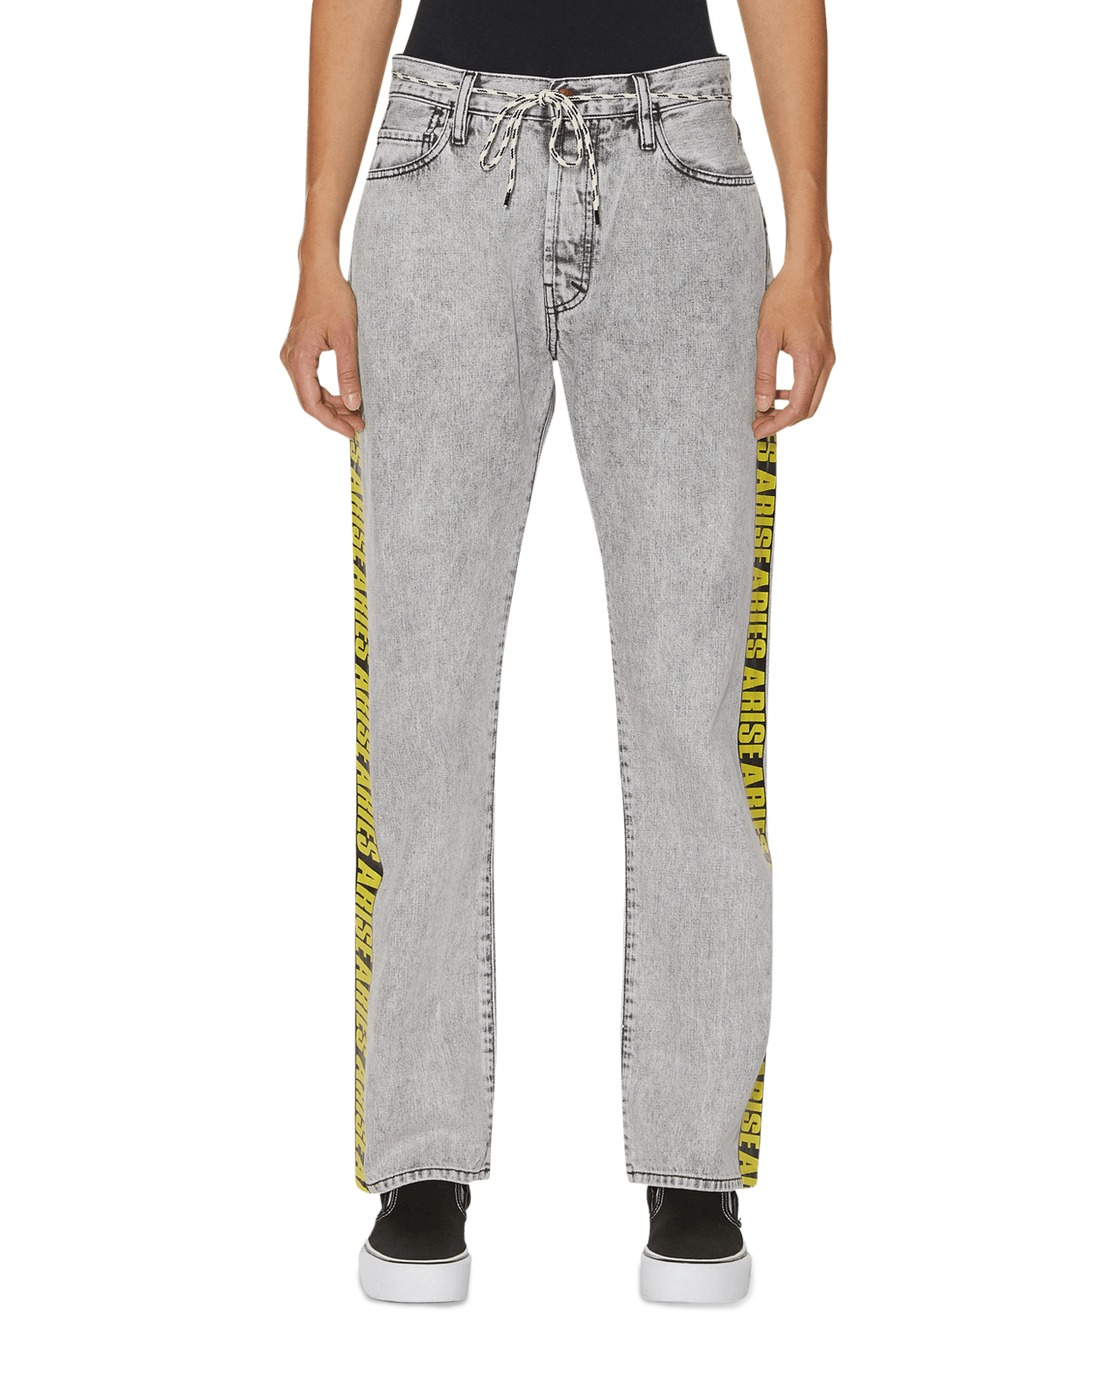 Aries Lilly Yellow Tape Jeans Grey Aceed